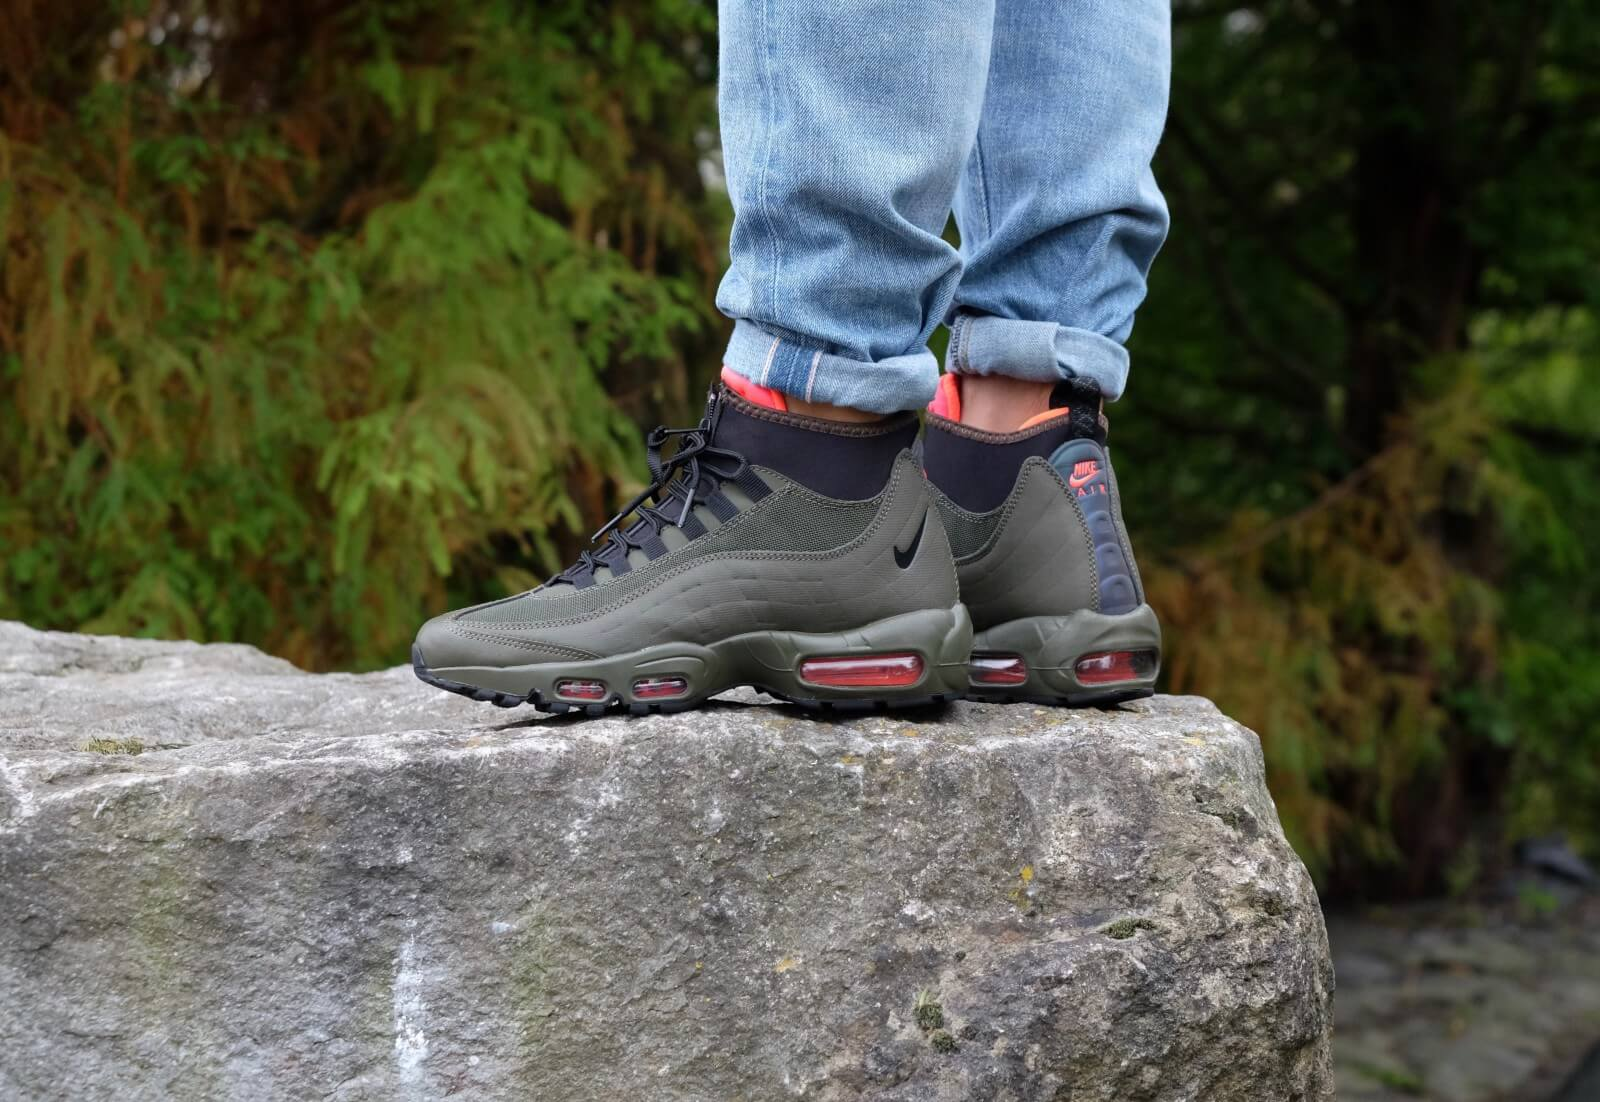 Nike Air Max 95 Sneakerboot In Green | Sneaker boots, Trendy